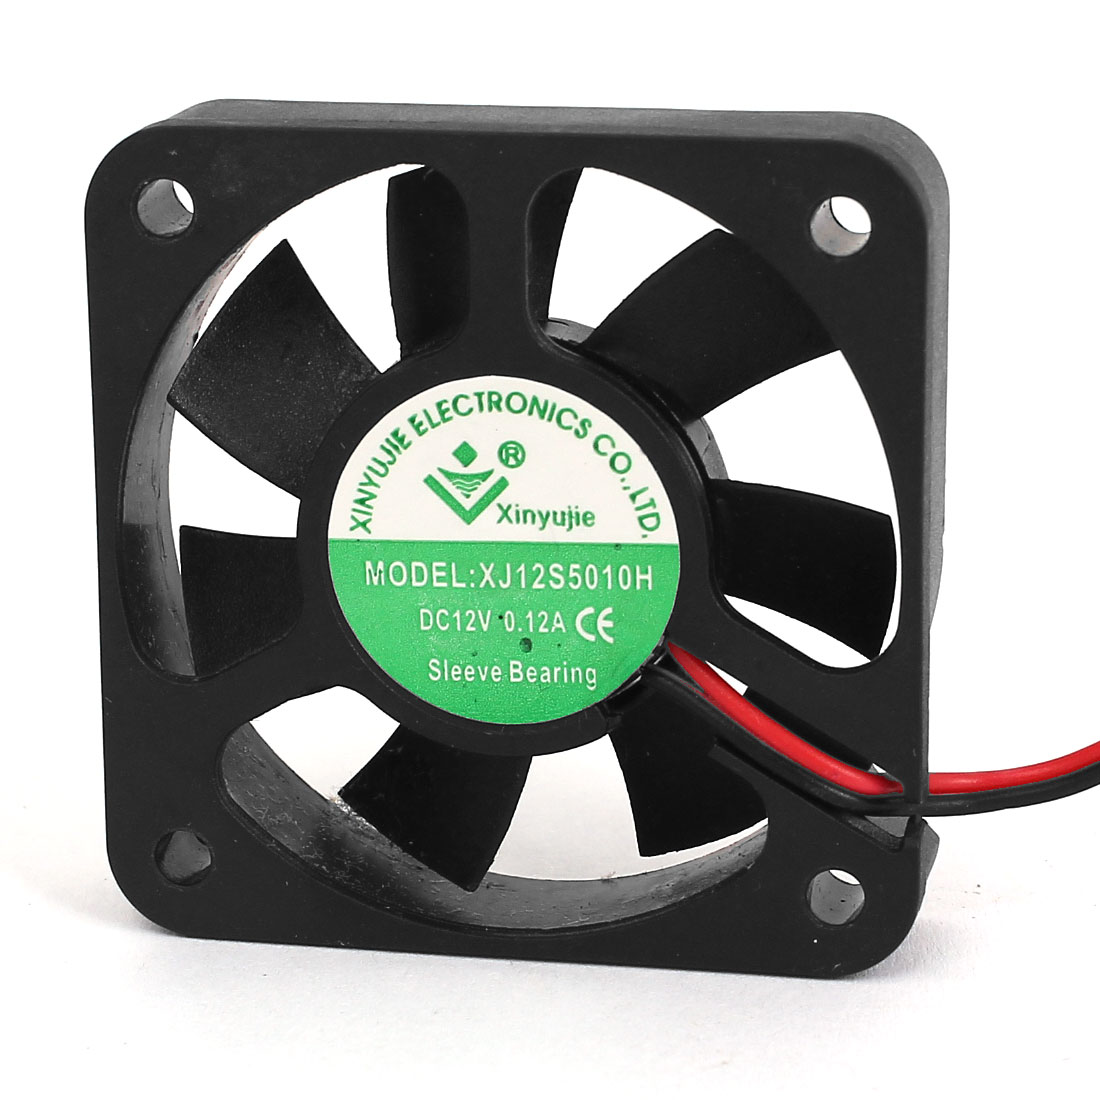 DC 12V 0.12A 2-Wired Black Plastic Square Frame Sleeve Bearing Axial Cooling Fan